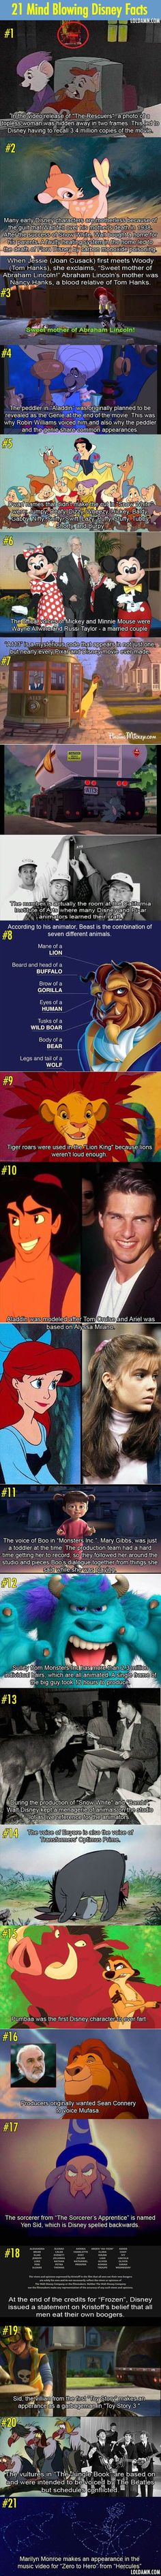 Another 21 Disney movies facts that will blow your mind. I had no clue about the majority of these.: